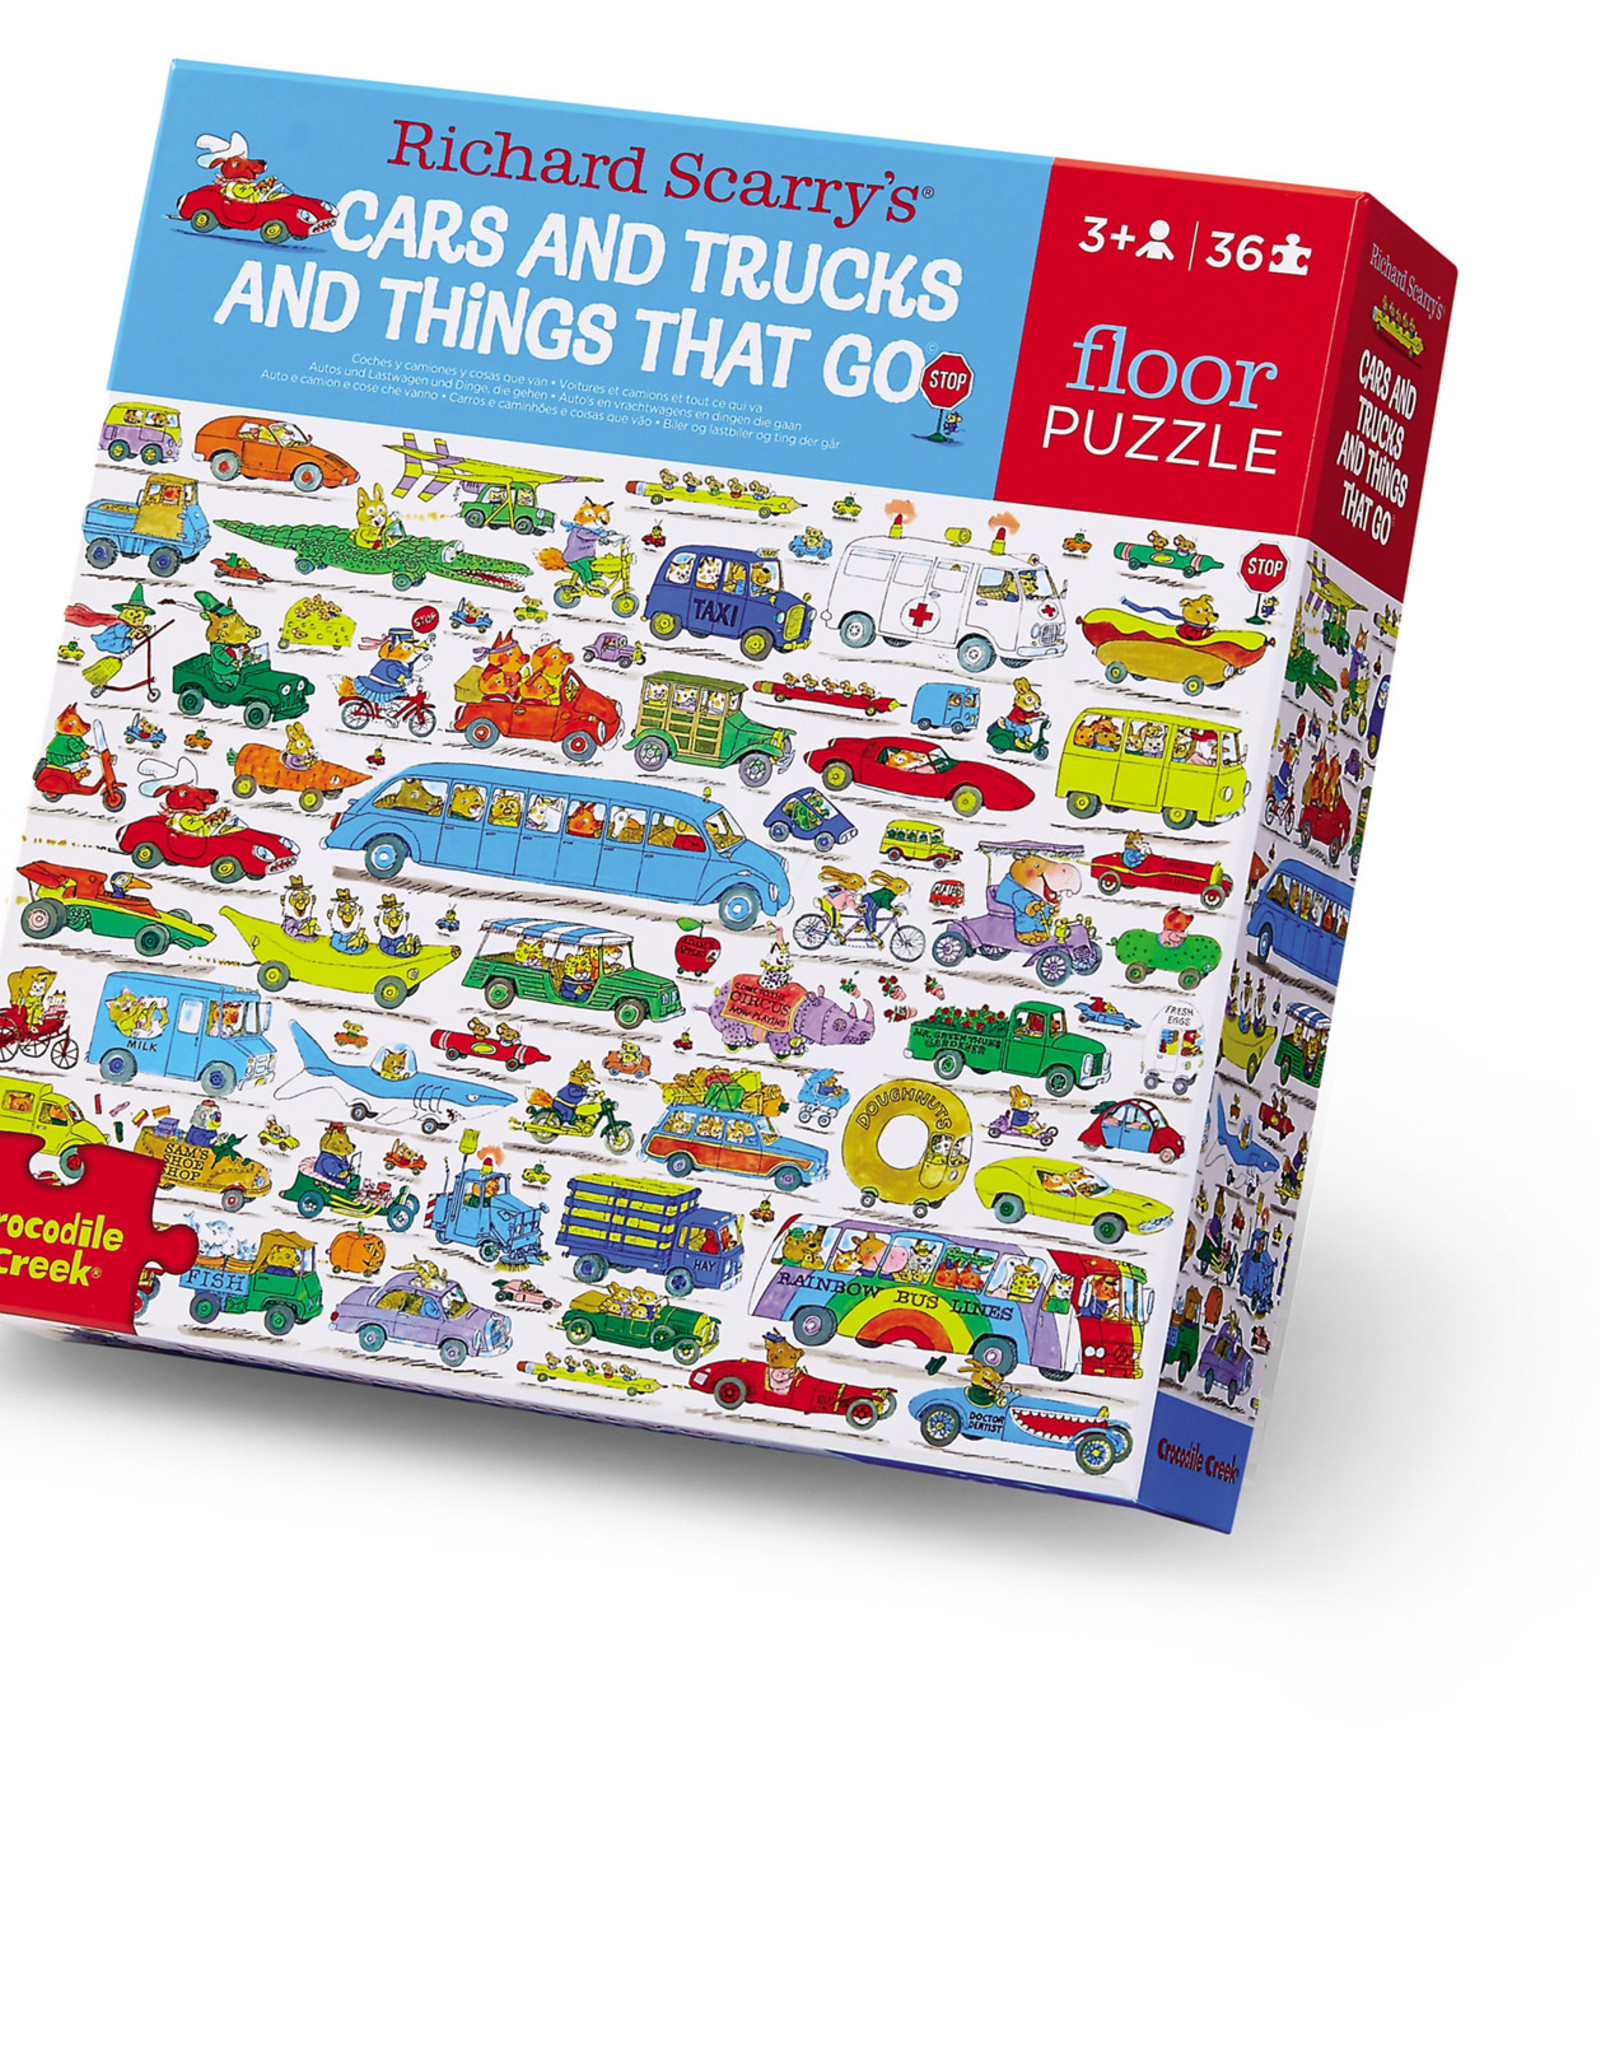 Crocodile Creek Puzzle 36 pc Puzzle, Cars & Trucks and Things that Go